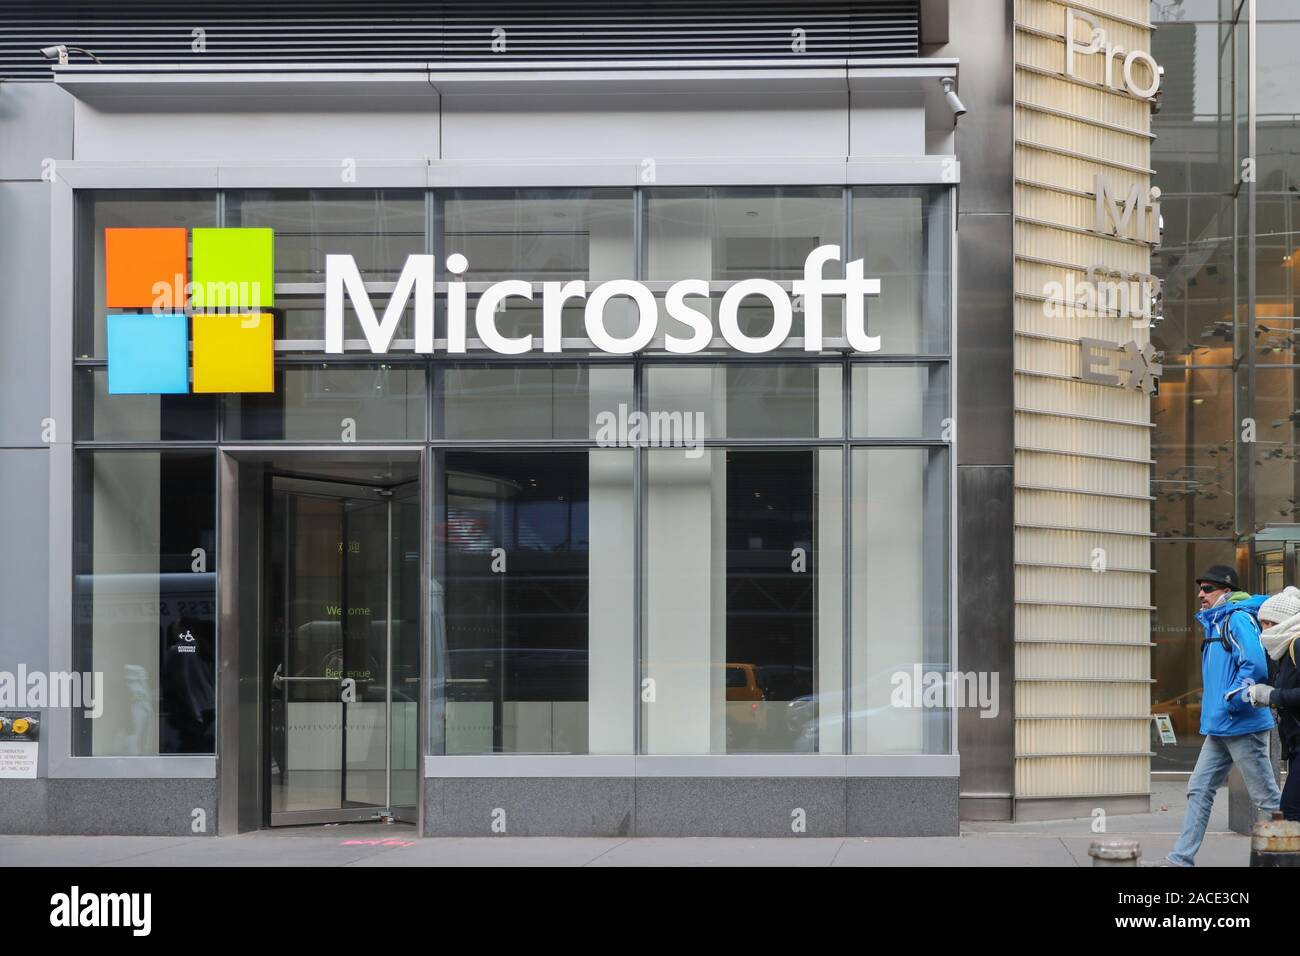 New York November 28 2019: Microsoft store in midtown Manhattan. Microsoft is one of the world's largest software, hardware and video gaming companies Stock Photo